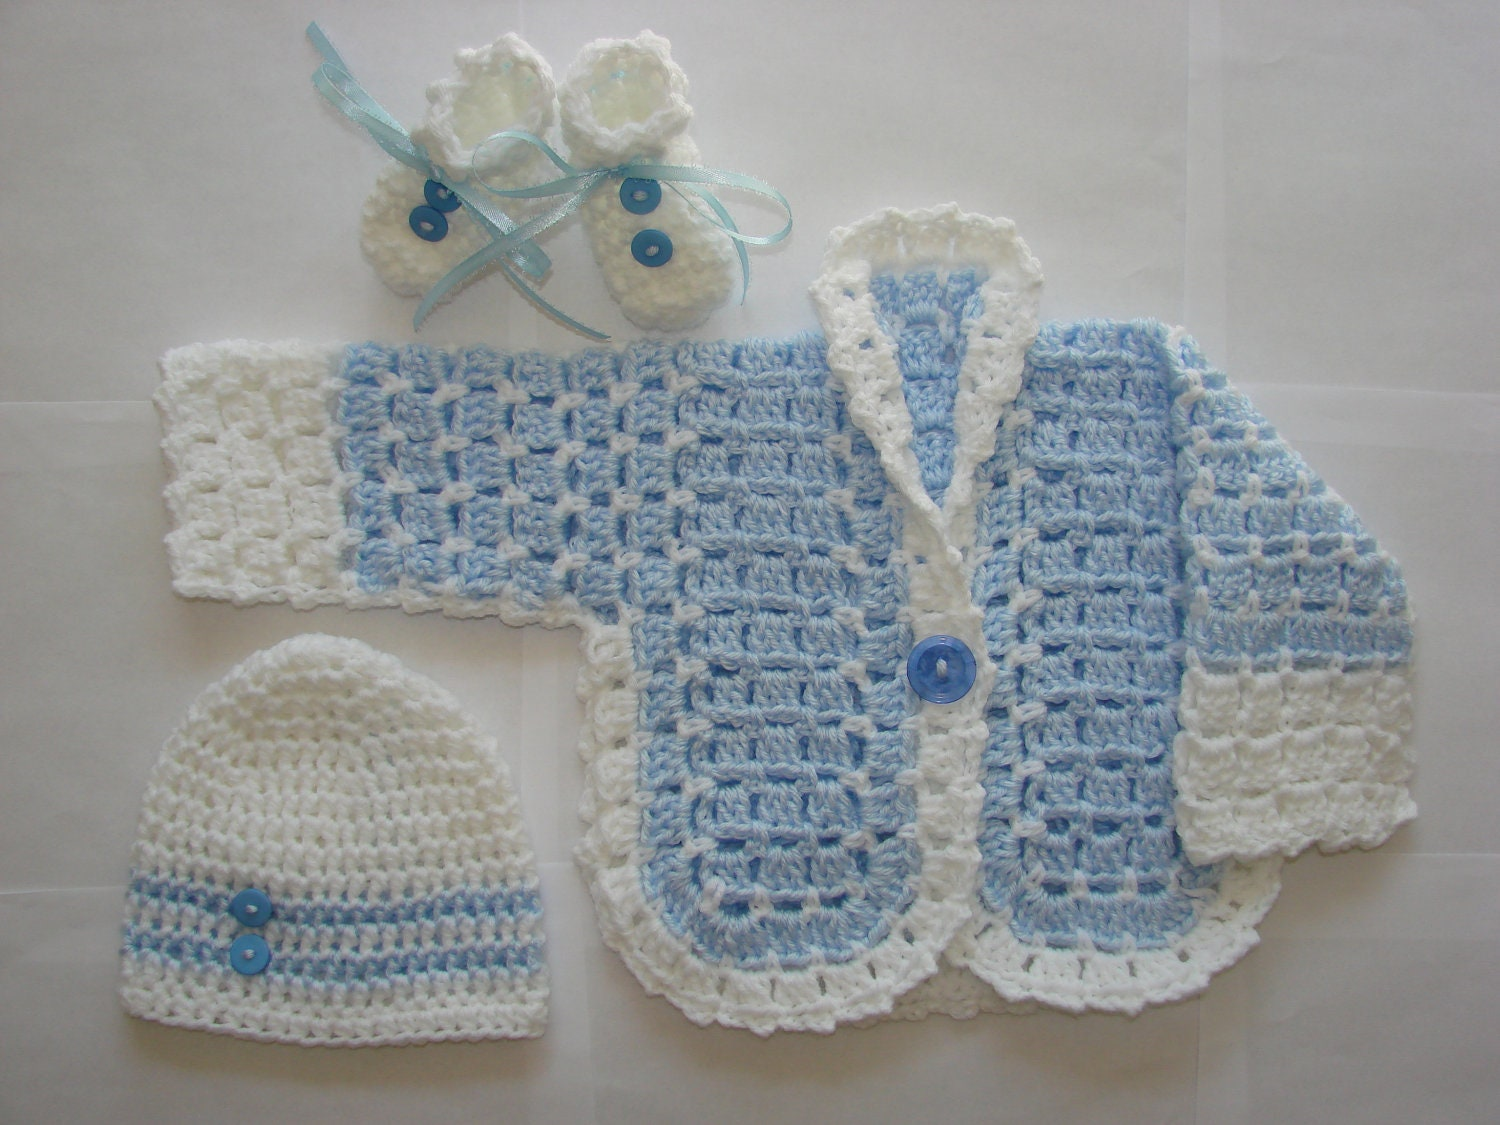 Crochet Pattern For Baby Hat And Sweater : Baby Boy Crochet Sweater Hat Booties Set Blue White Handmaded